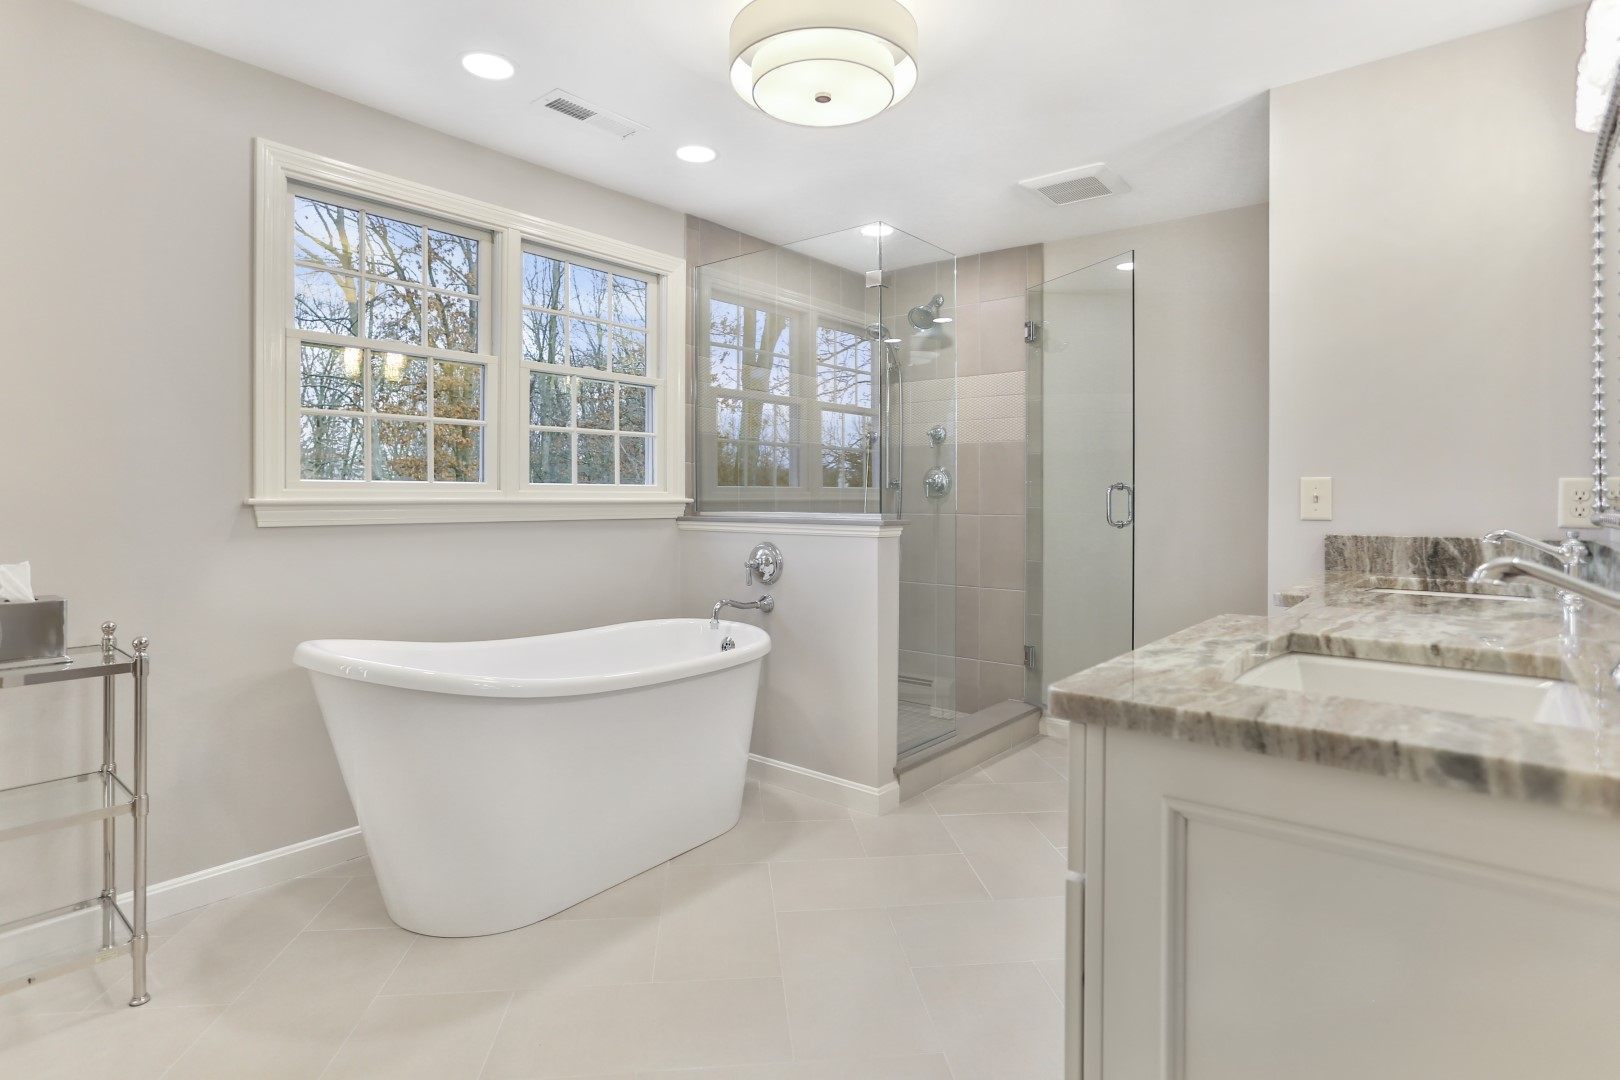 Residential - Master Bath Renovation 2.jpg